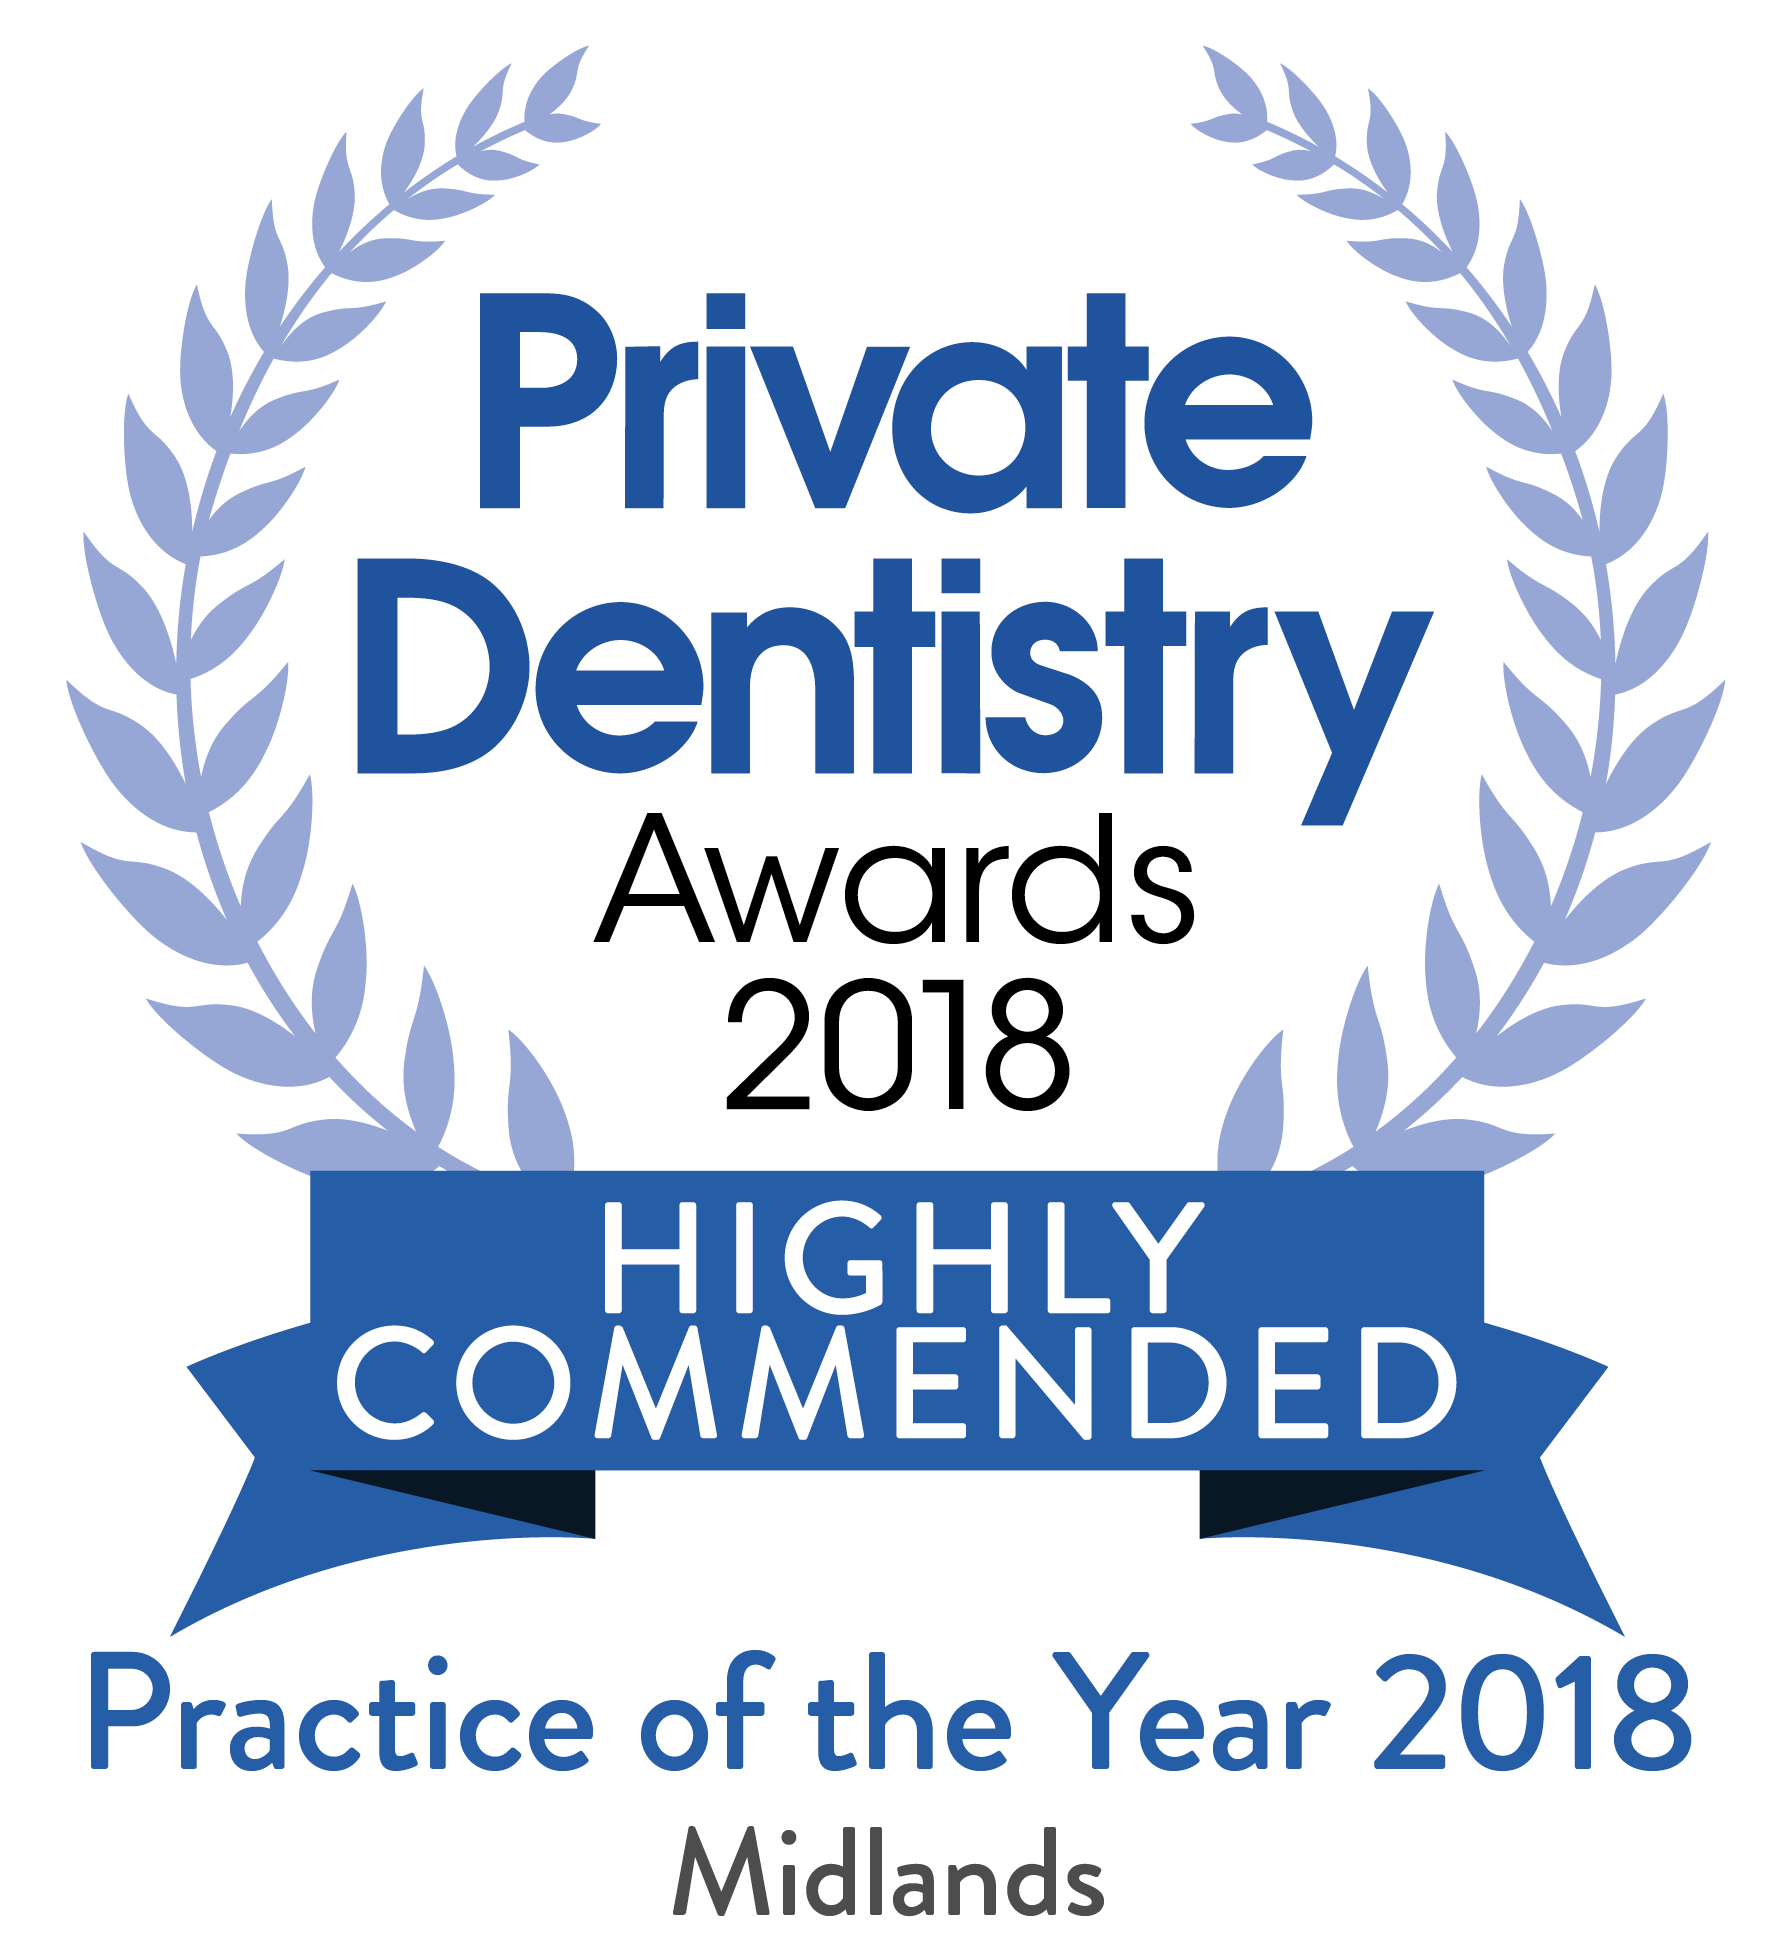 Private Dentistry Awards 2018 Highly Commended Pratice of the year 2018